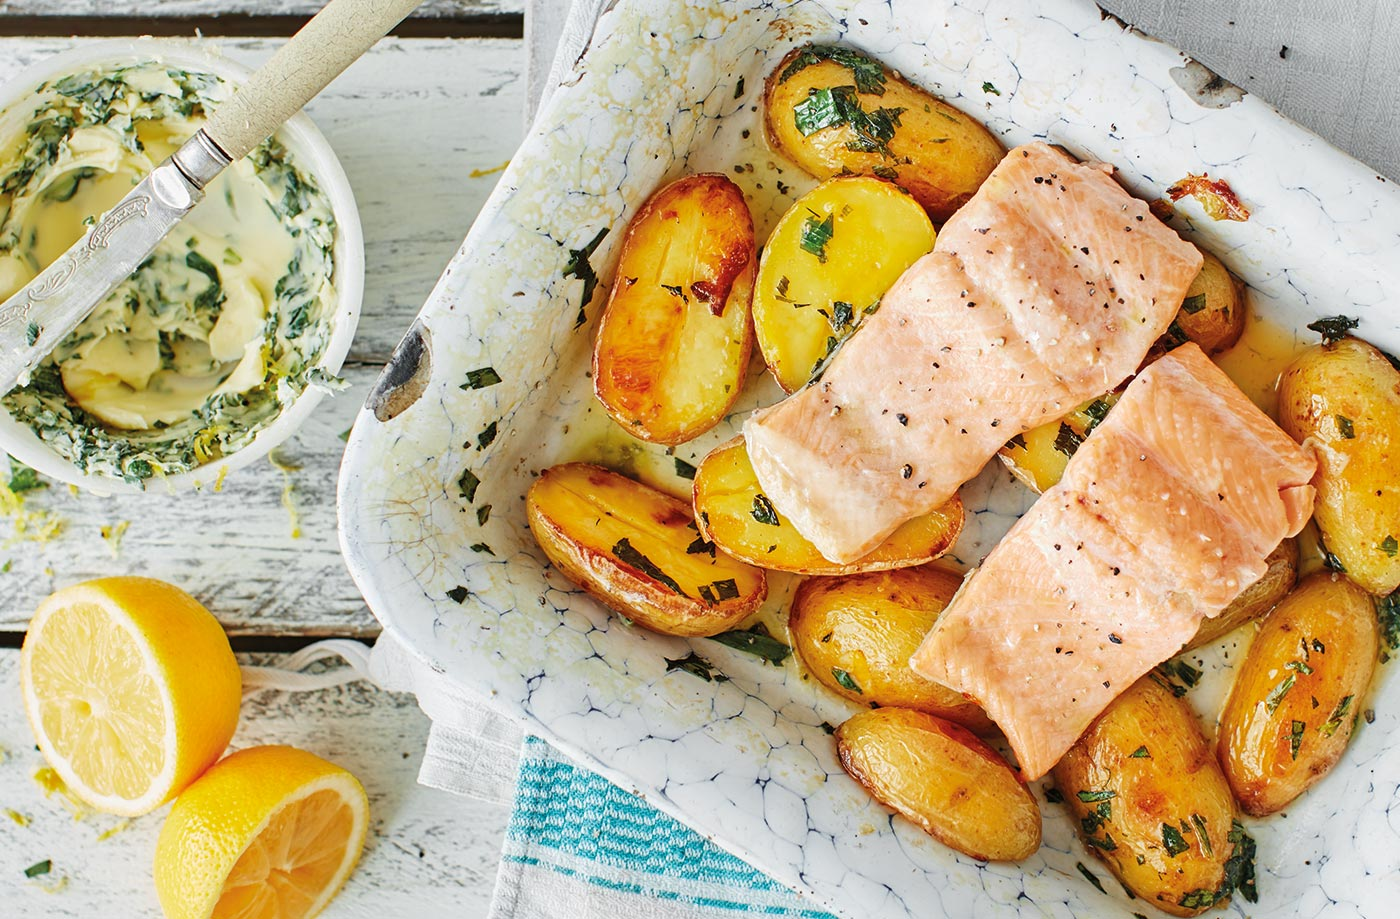 Roast trout and new potatoes with herb butter recipe